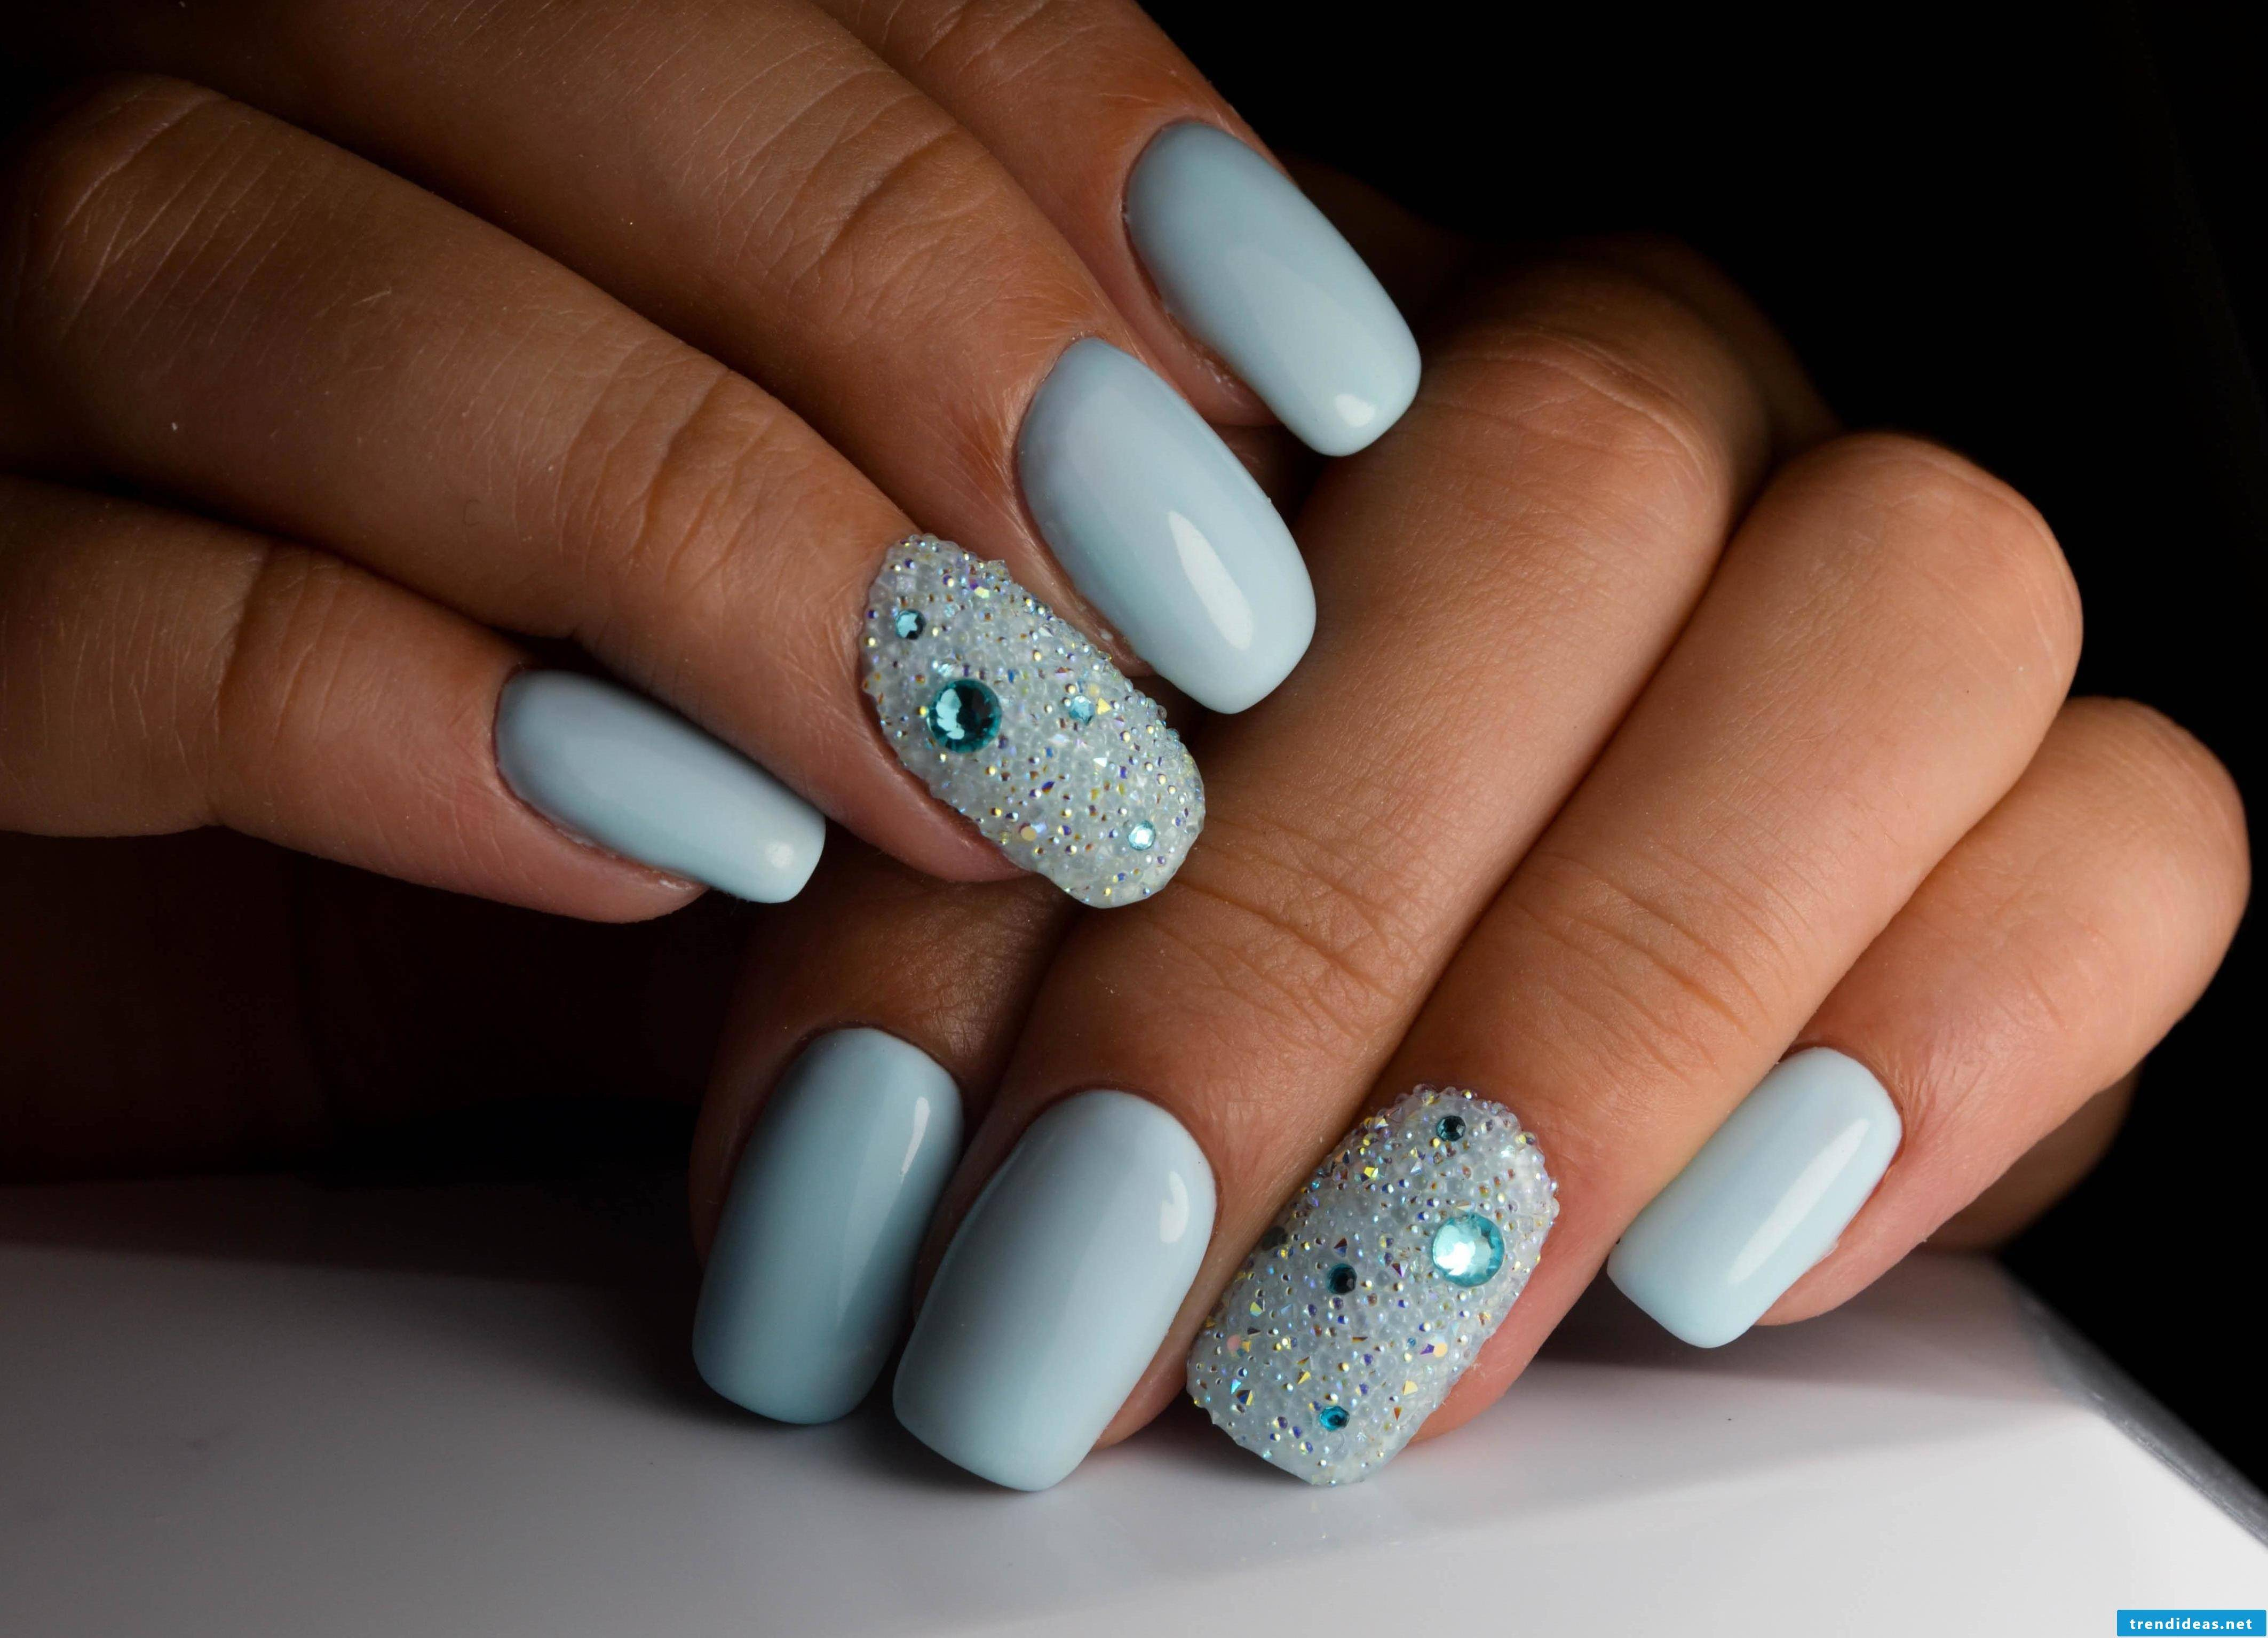 Baby blue nails - a great nail finding